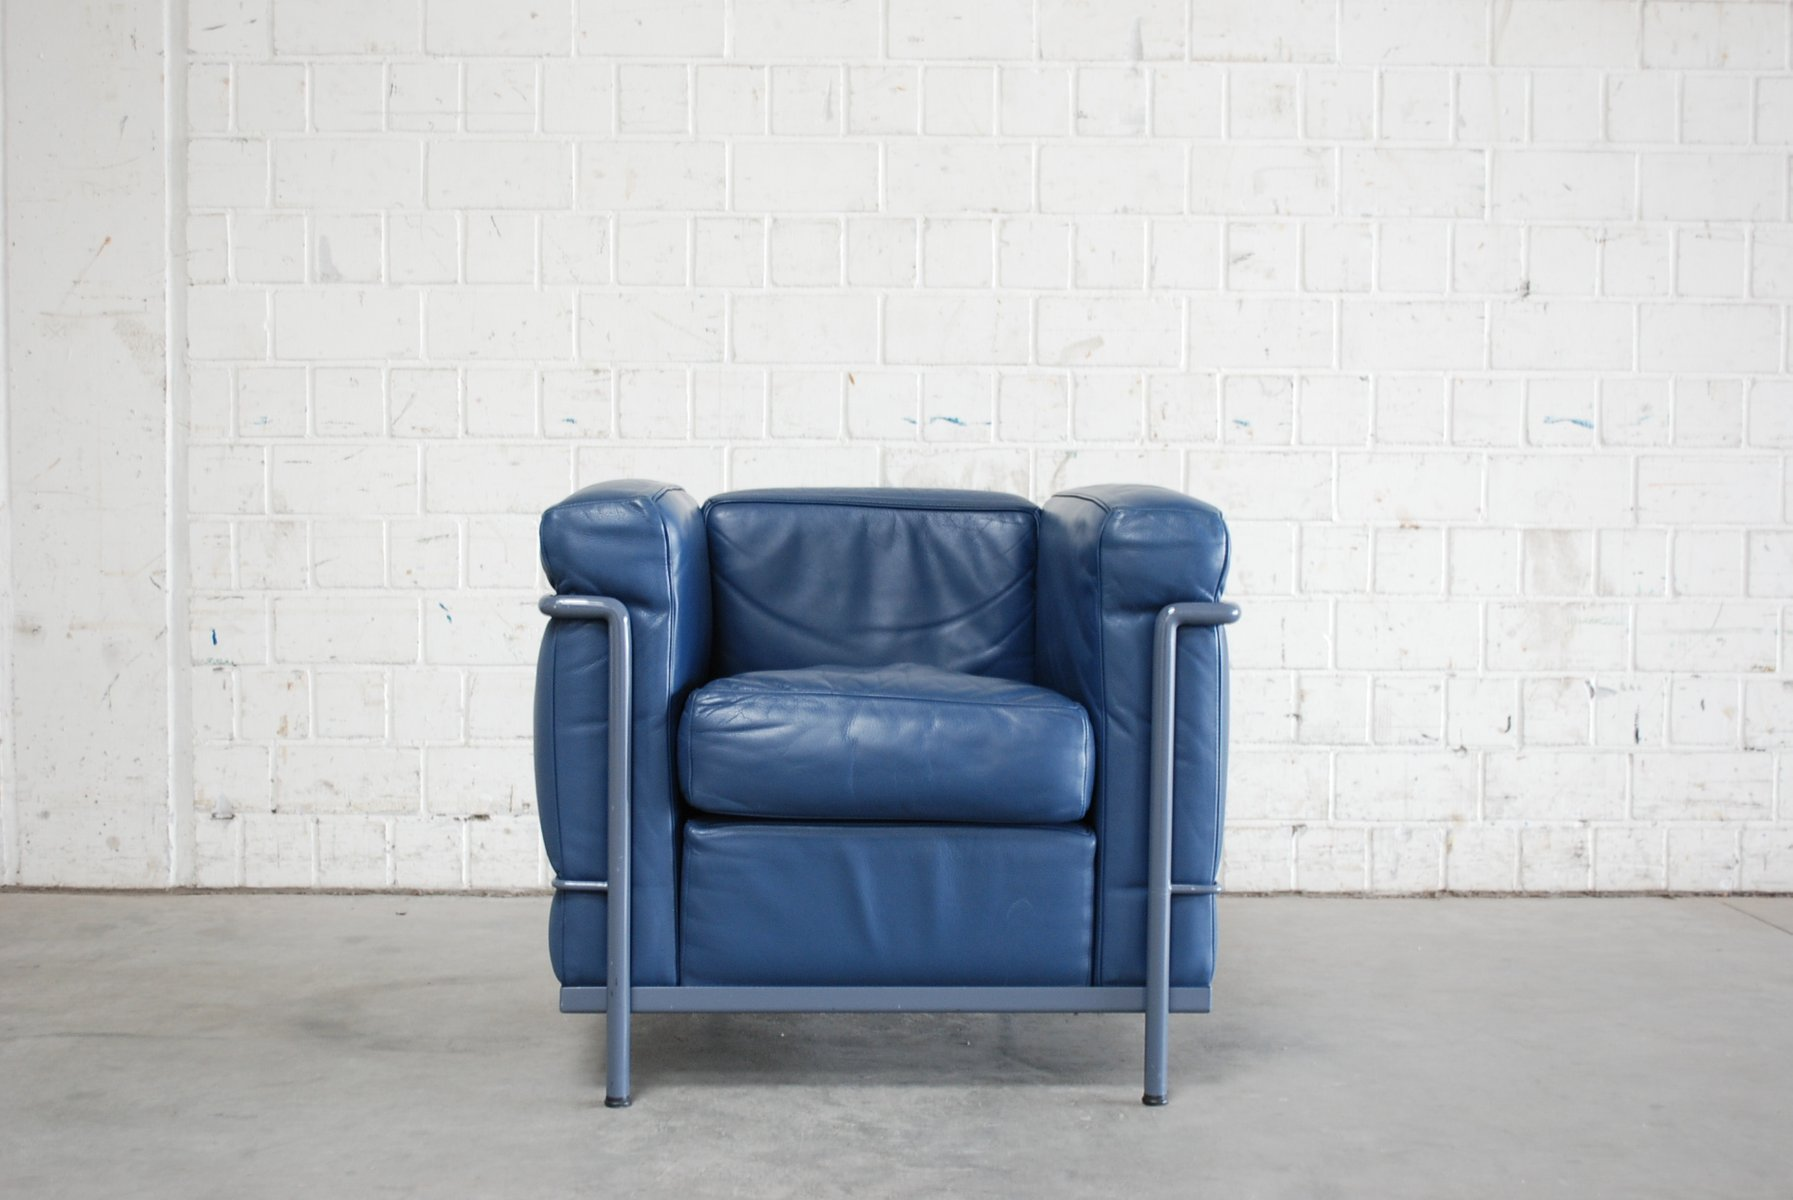 Vintage blue model lc2 leather chair by le corbusier for for Le corbusier lc2